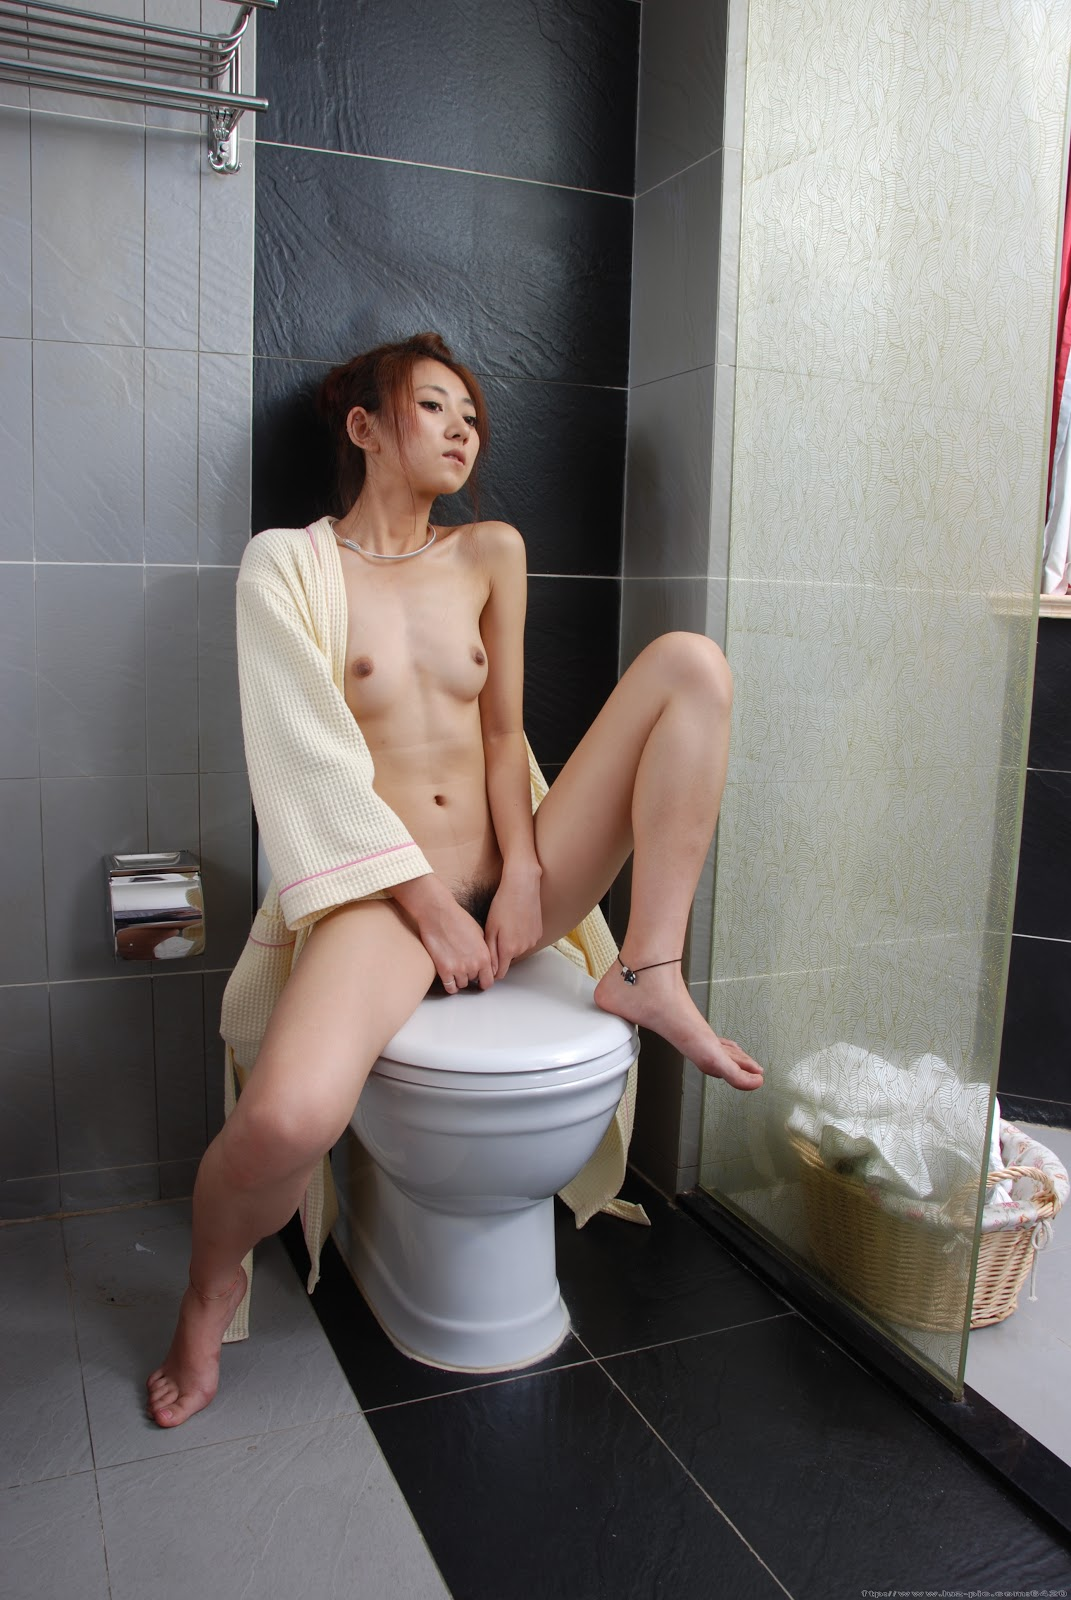 Chinese Nude_Art_Photos_-_251_-_YanFengJiao.rar